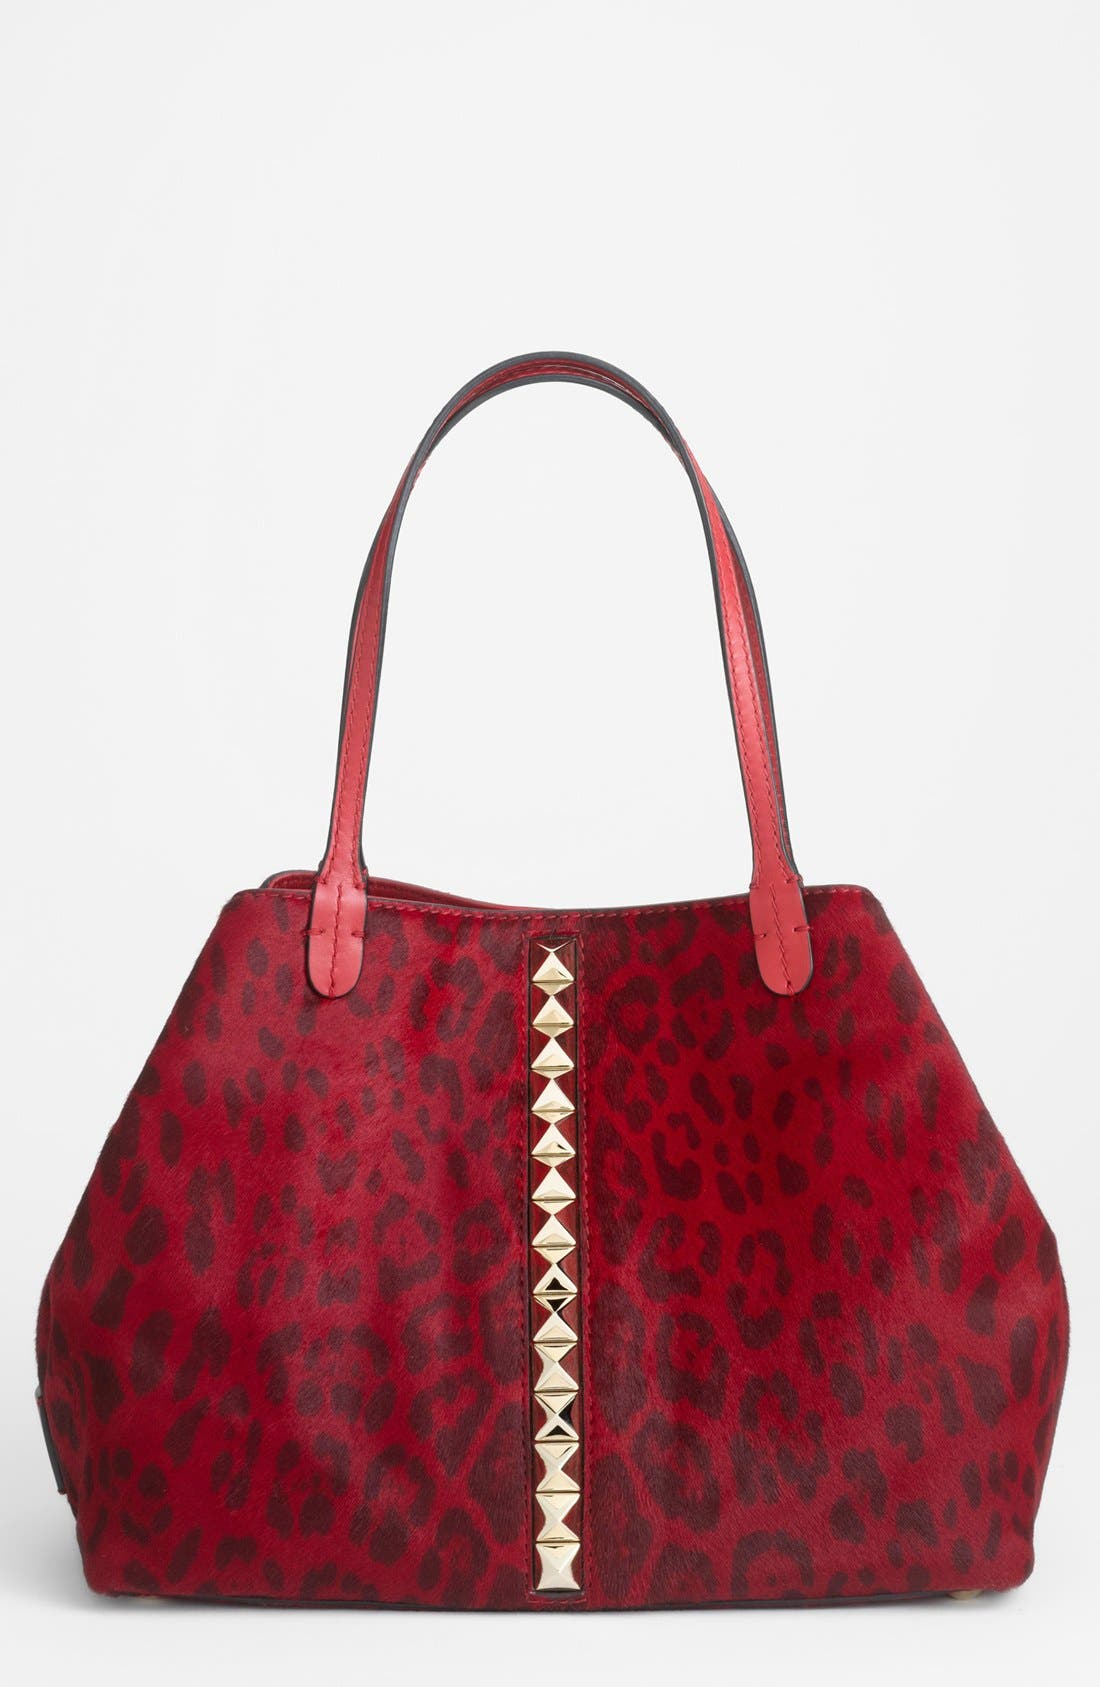 Main Image - Valentino 'Cavallino - Medium' Calf Hair Tote